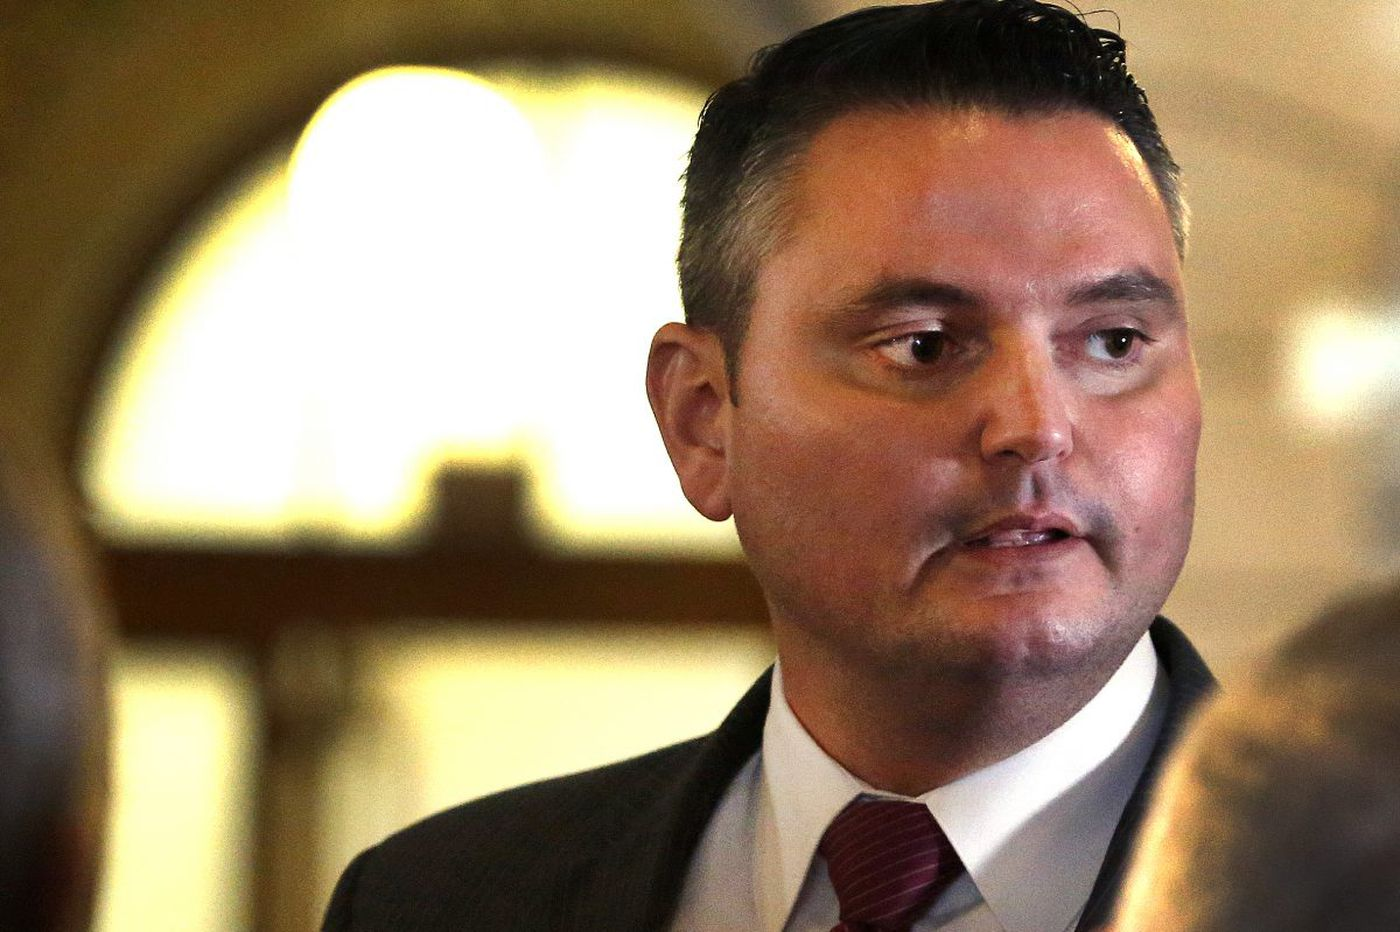 Pa. House leaders move to strip Rep. Nick Miccarelli of some of his duties